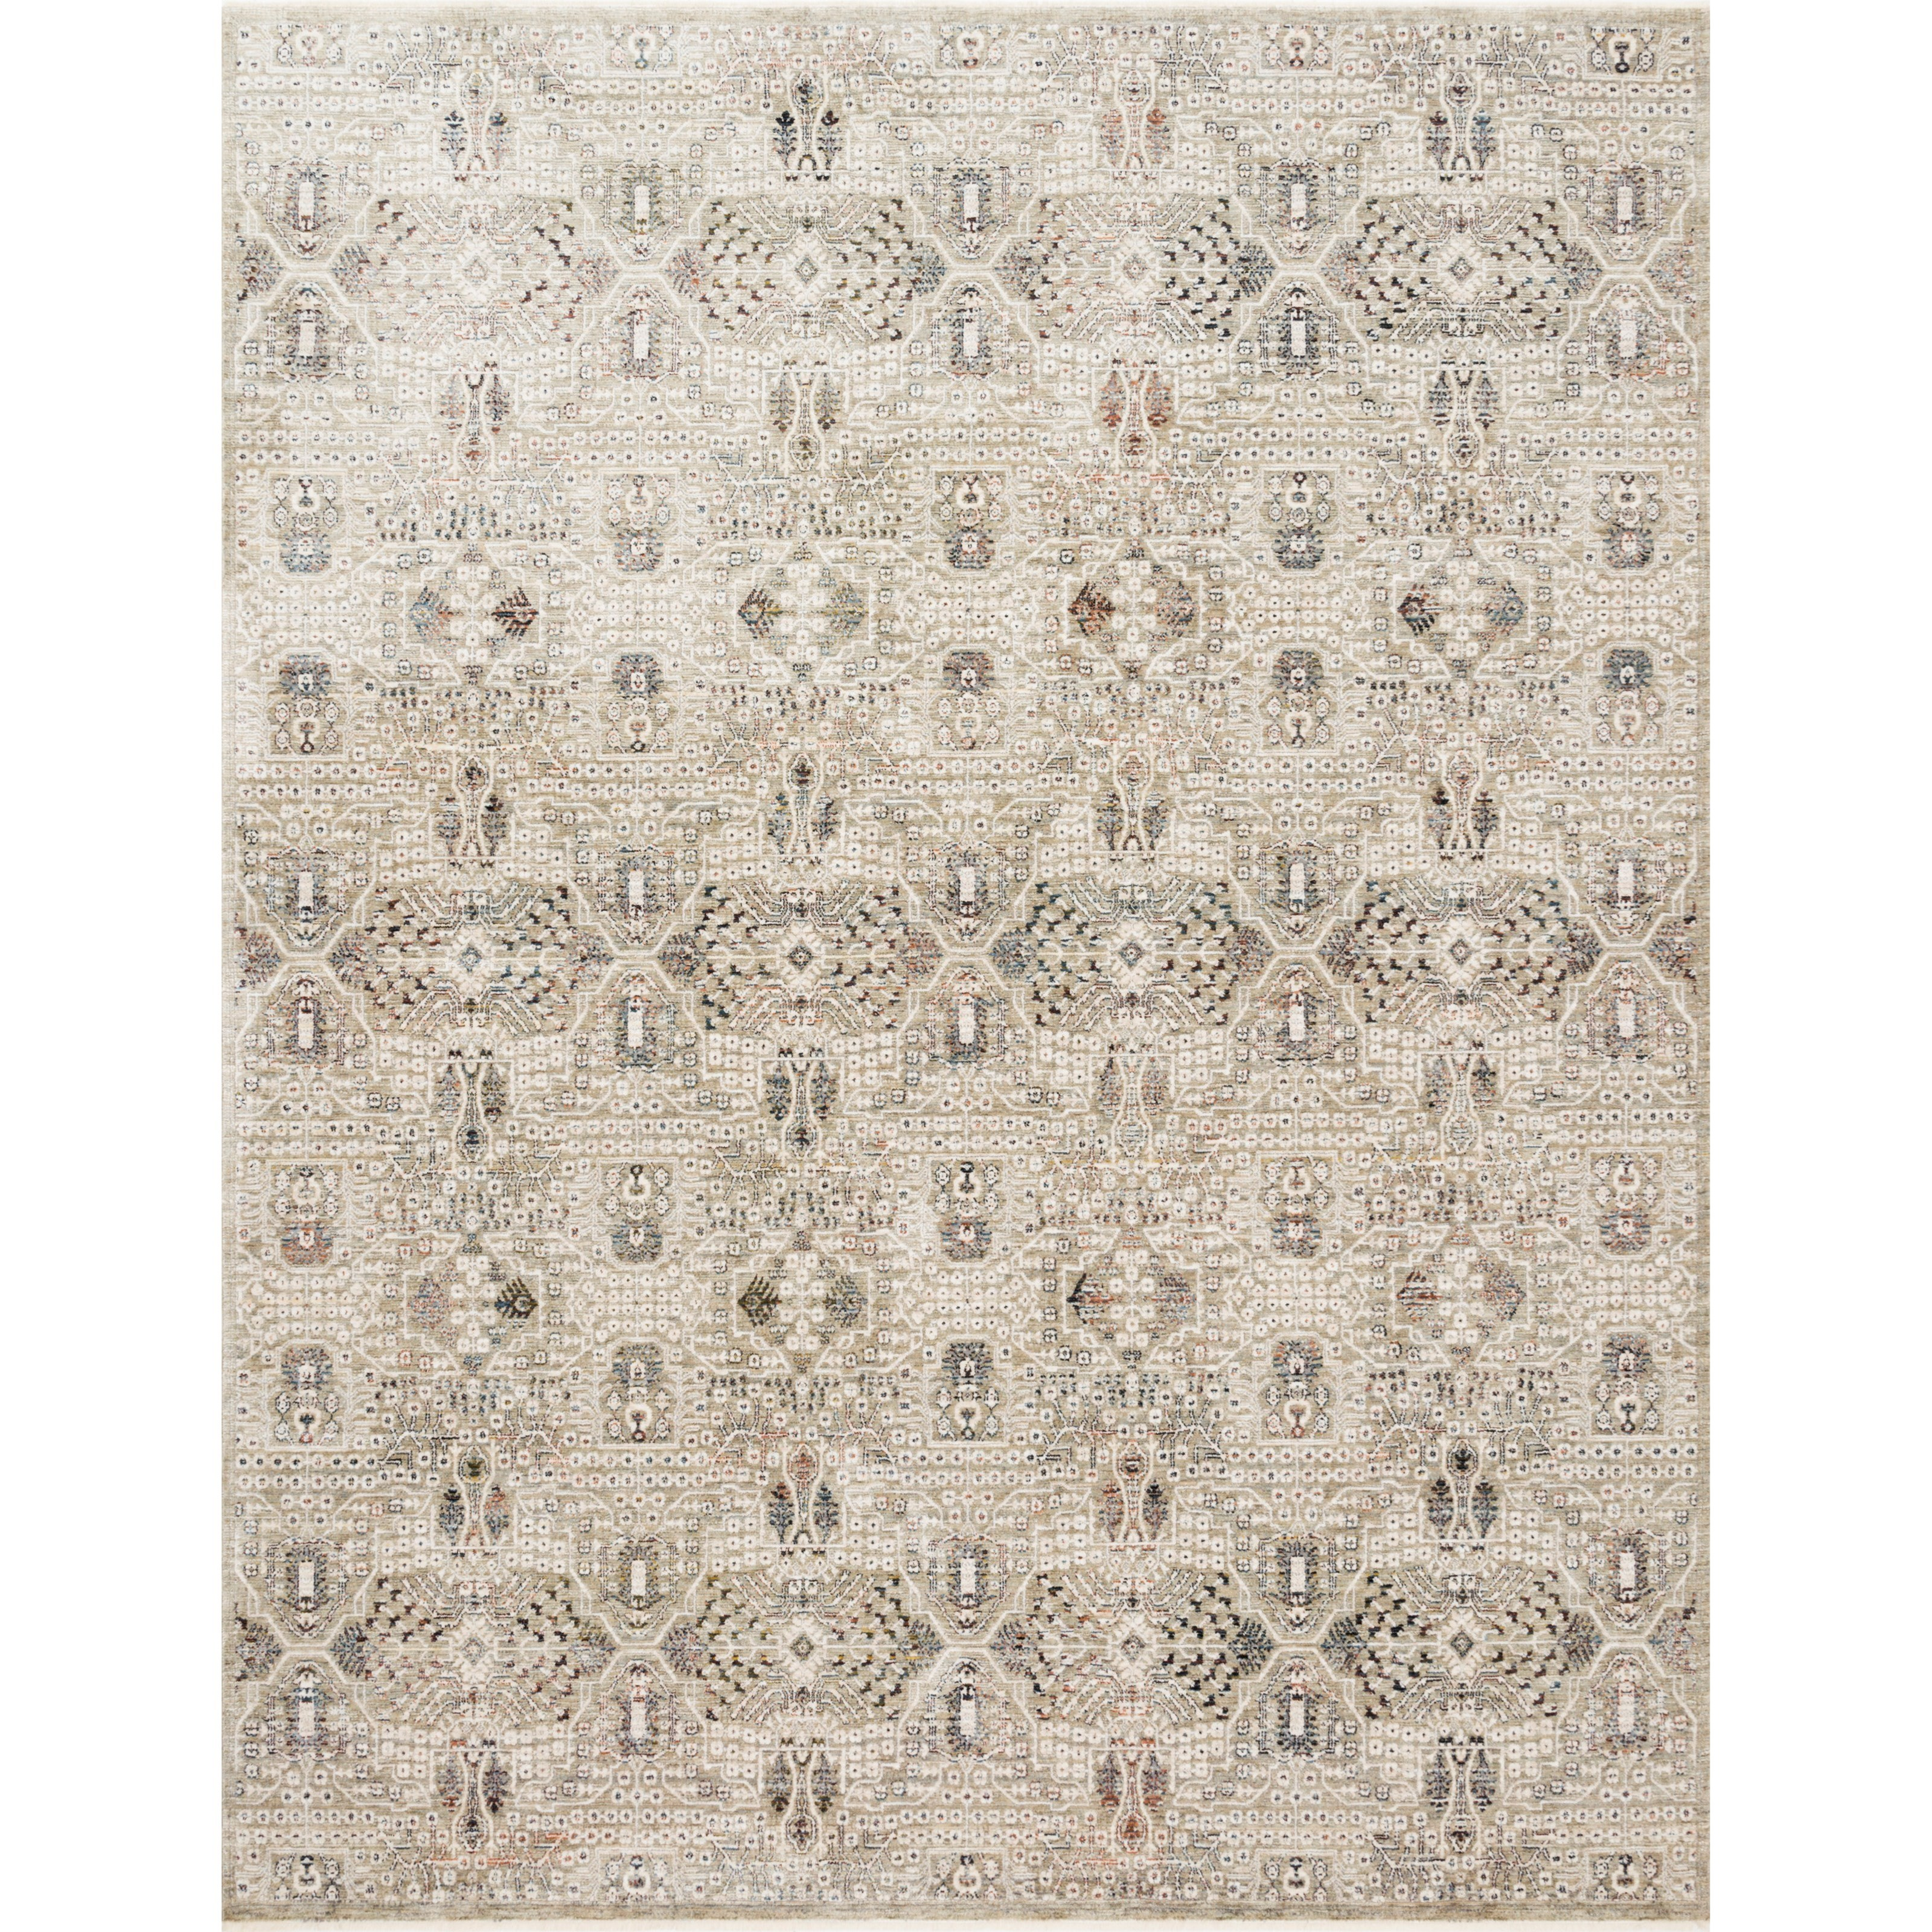 "Theia 2'10"" x 12'6"" Granite / Ivory Rug by Loloi Rugs at Virginia Furniture Market"